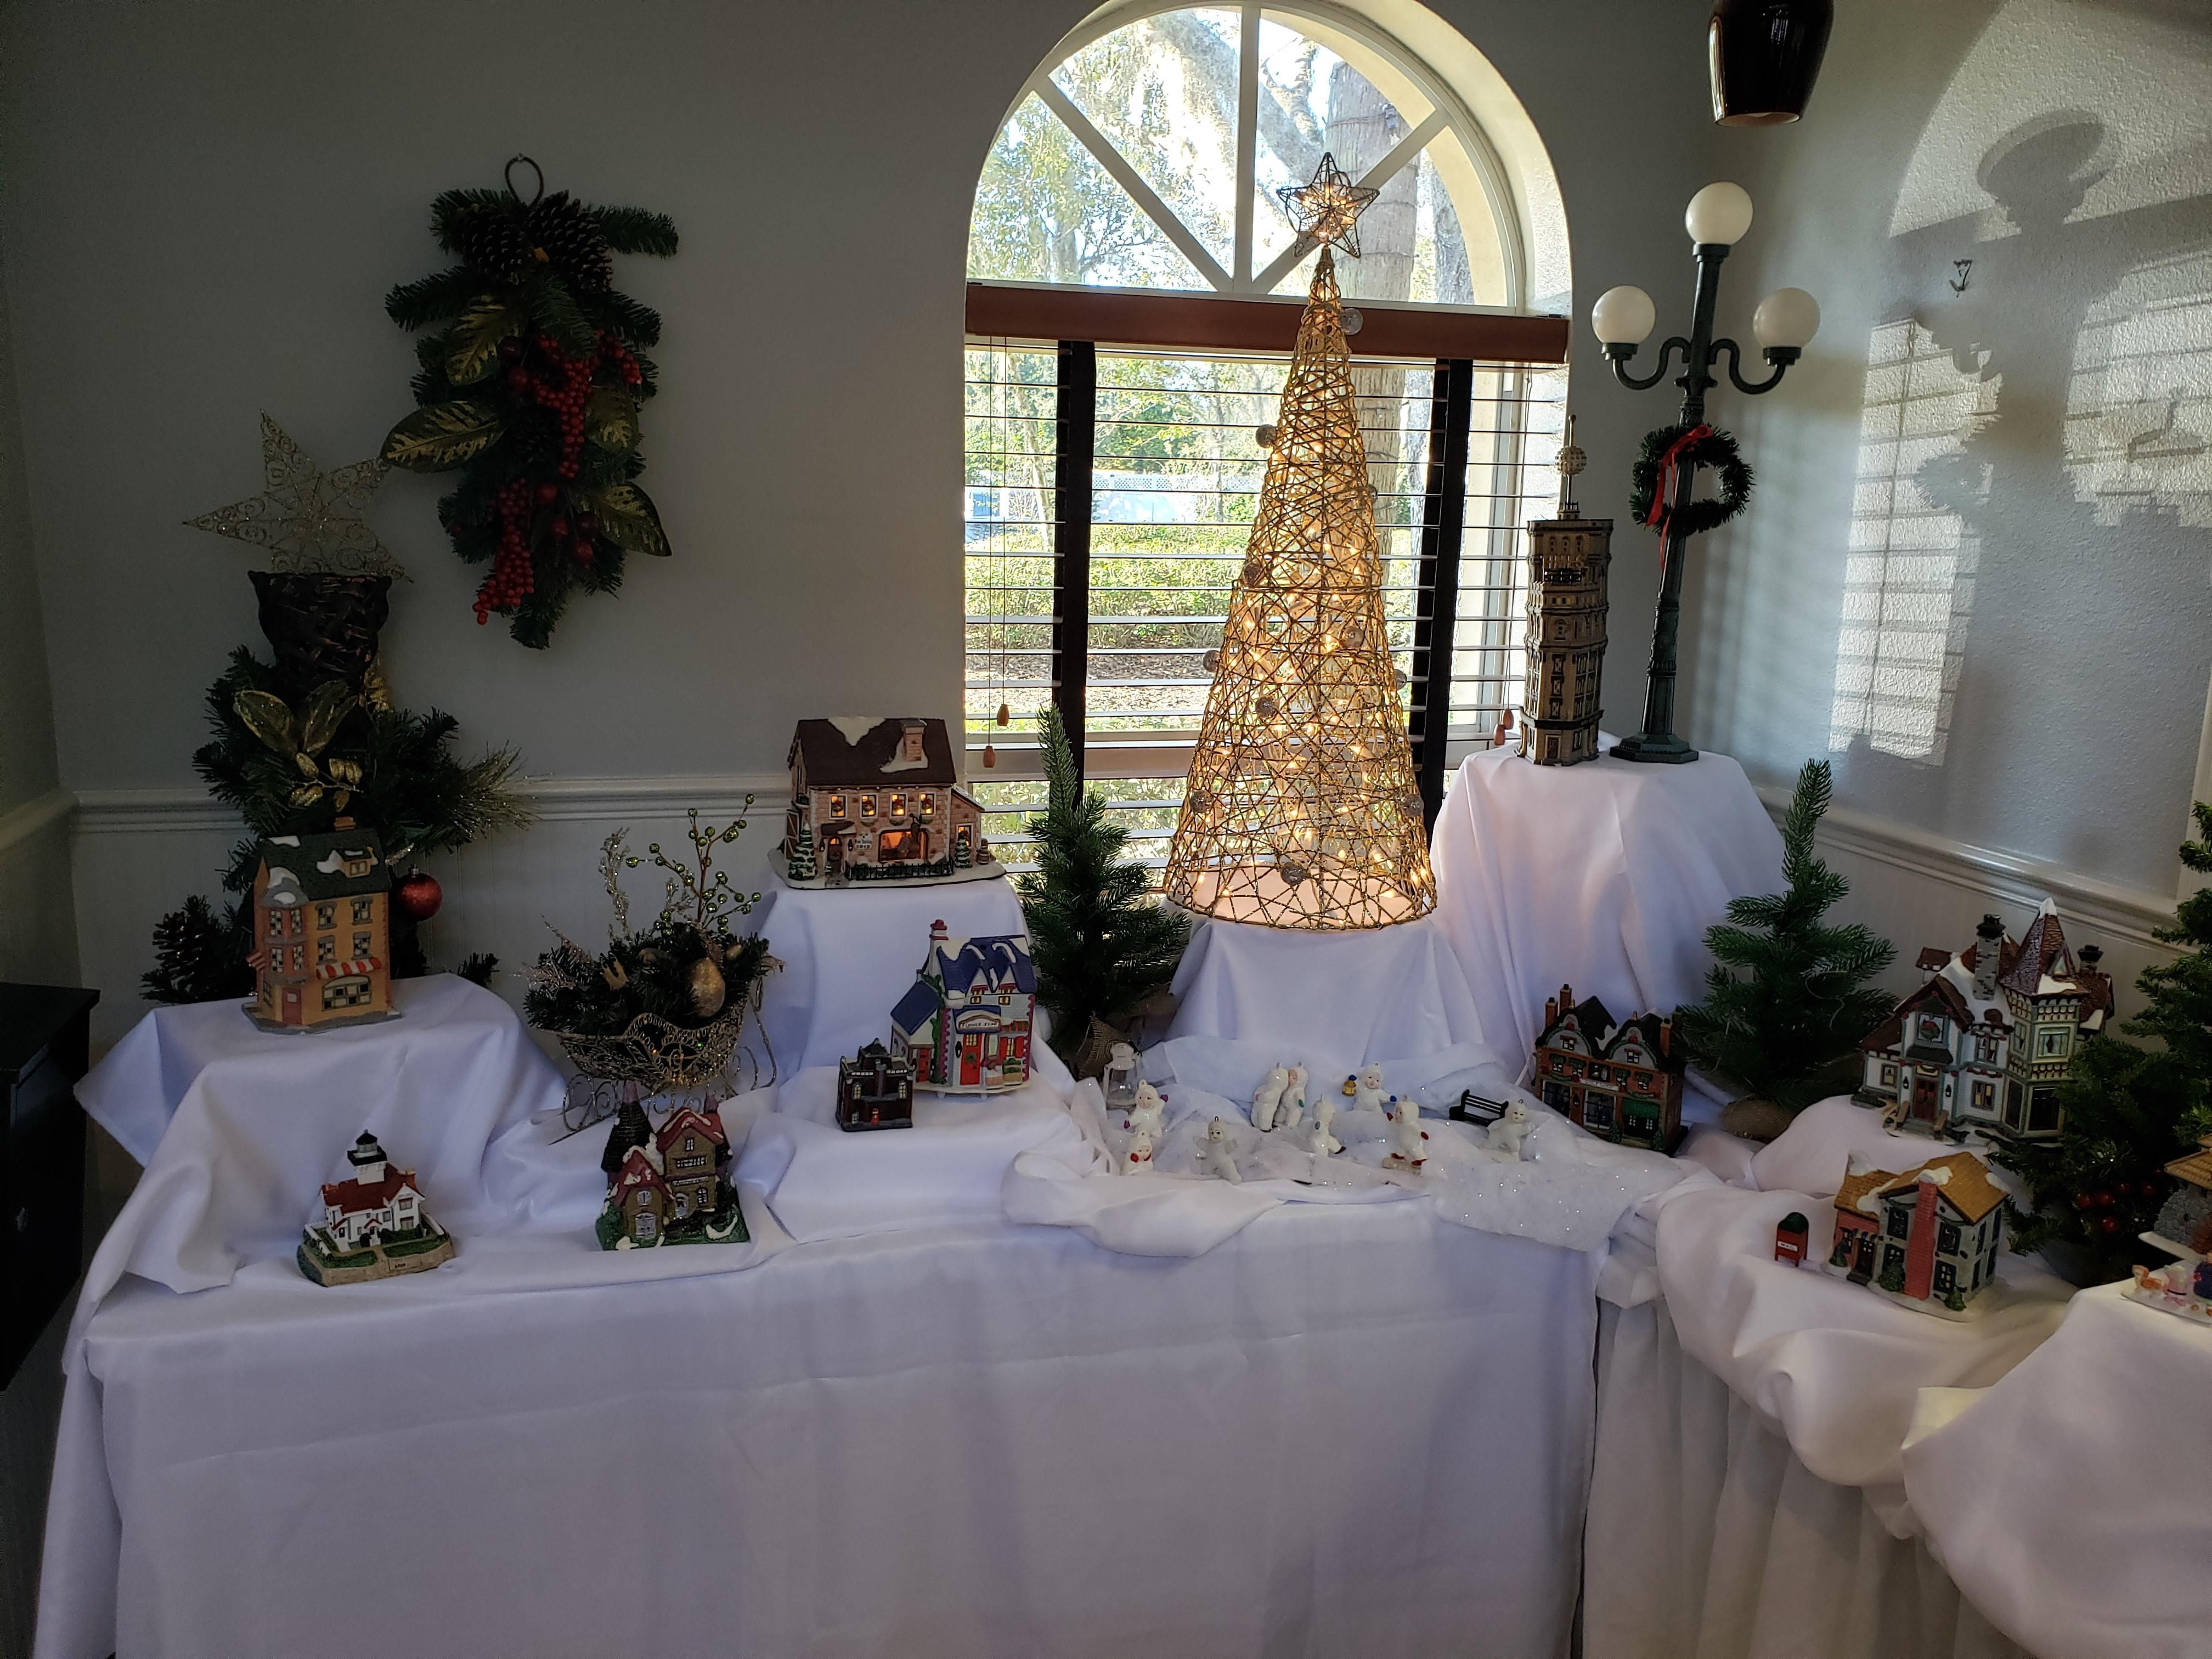 Inside Clubhouse with little decorated Christmas houses